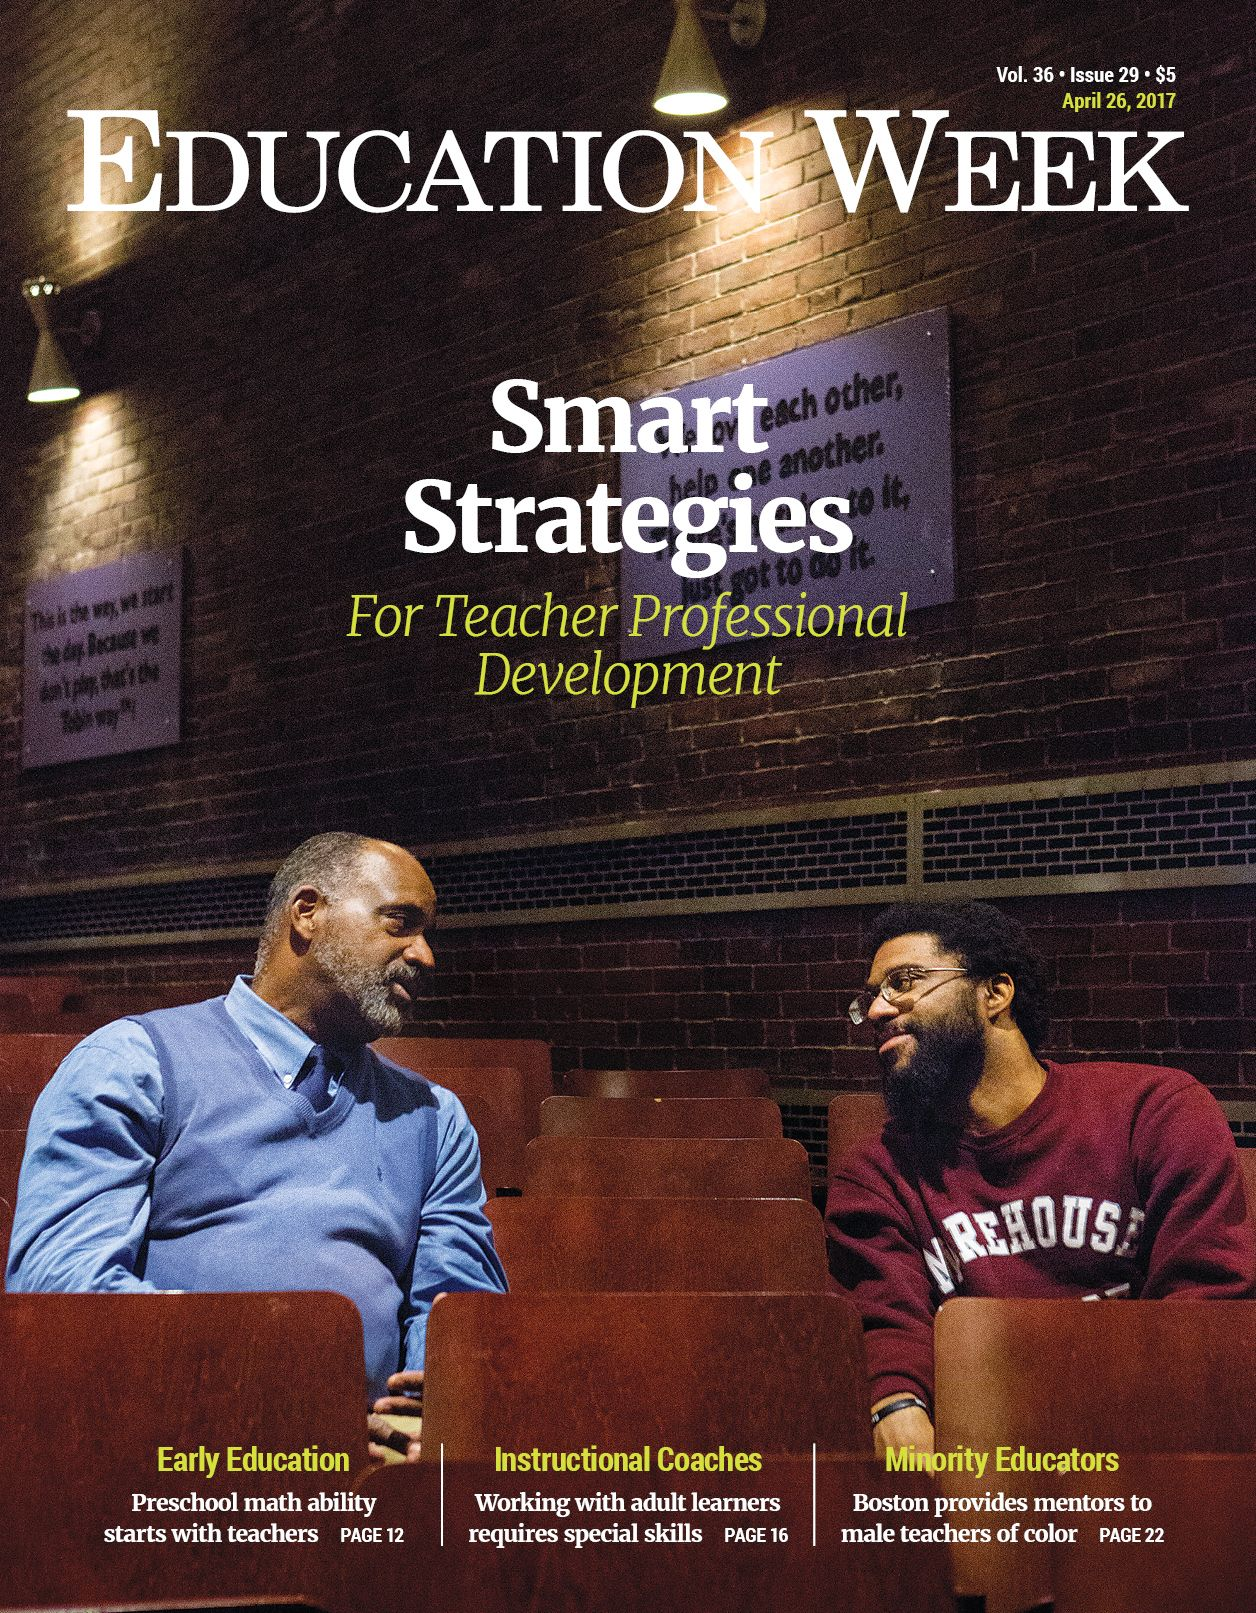 Education Week Vol 36 Issue 29 April 26 Special